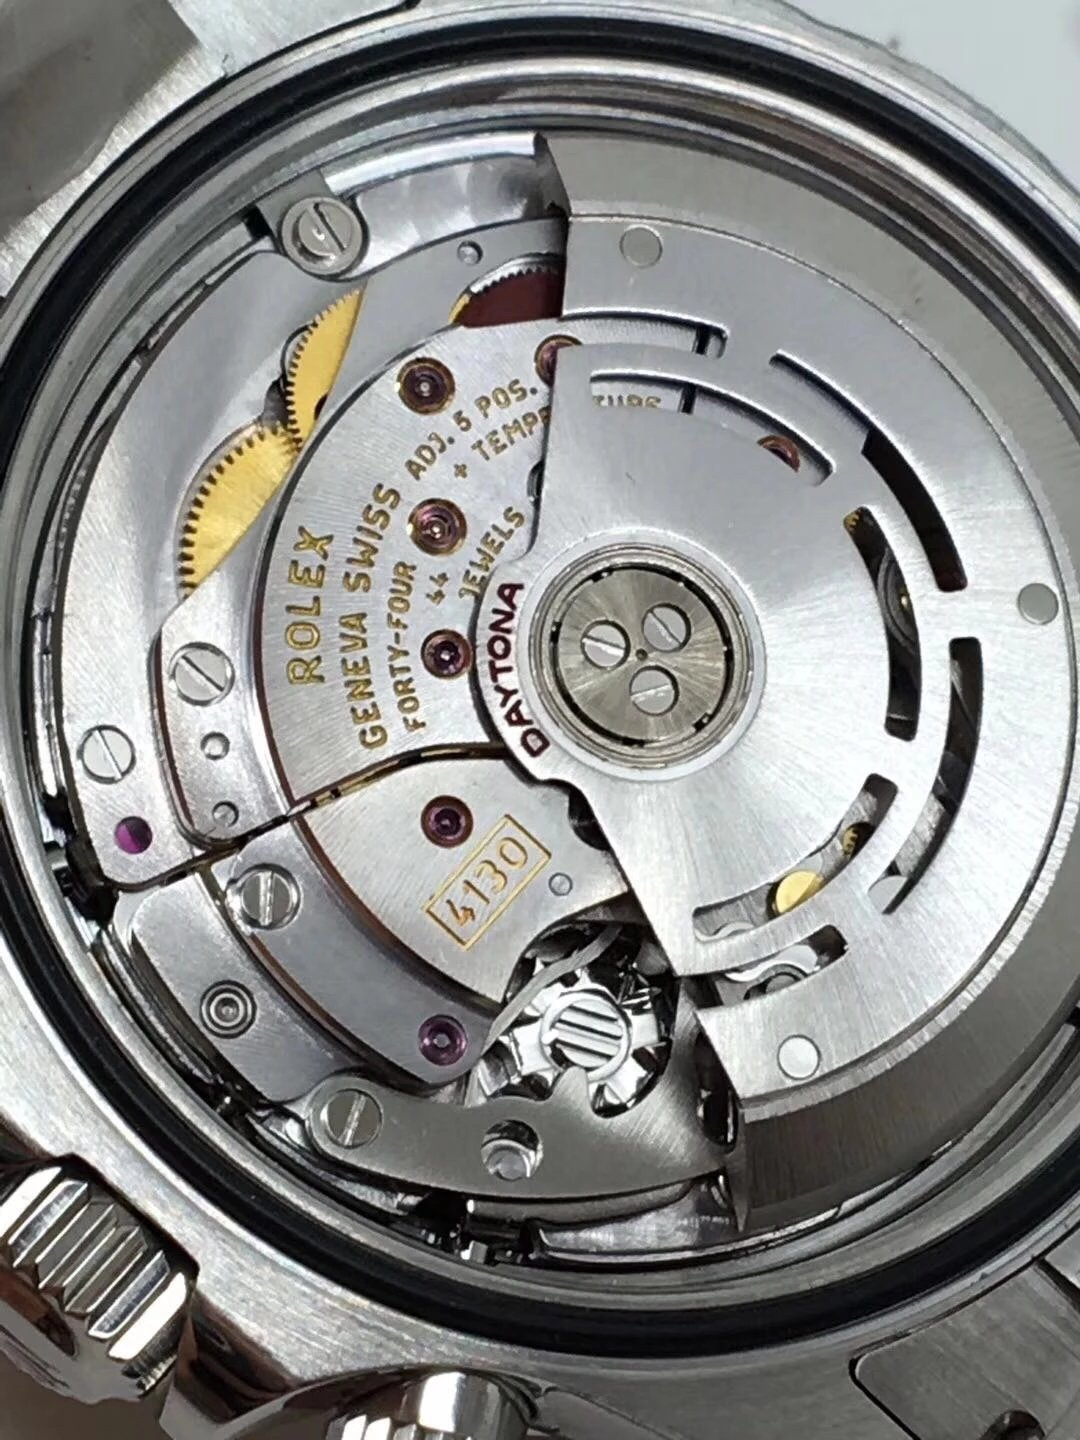 Rolex Daytona 4130 Movement Engravings